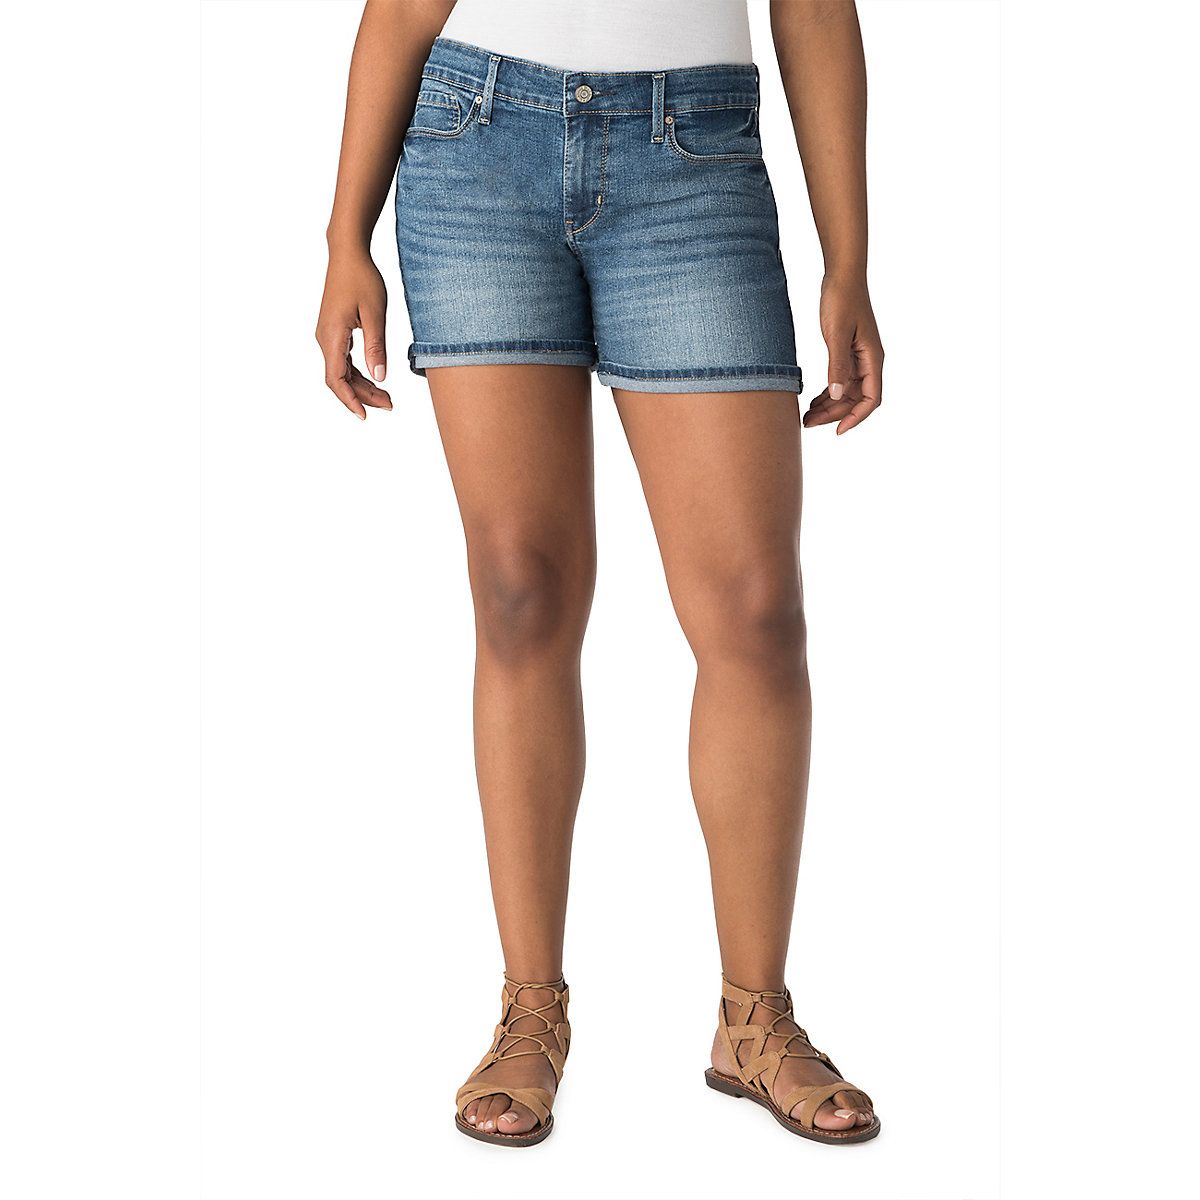 9cc1e0c6 Details about Levi's Signature Gold By Levi Strauss NEW Onyx Blue Women Mid- Rise Denim Shorts